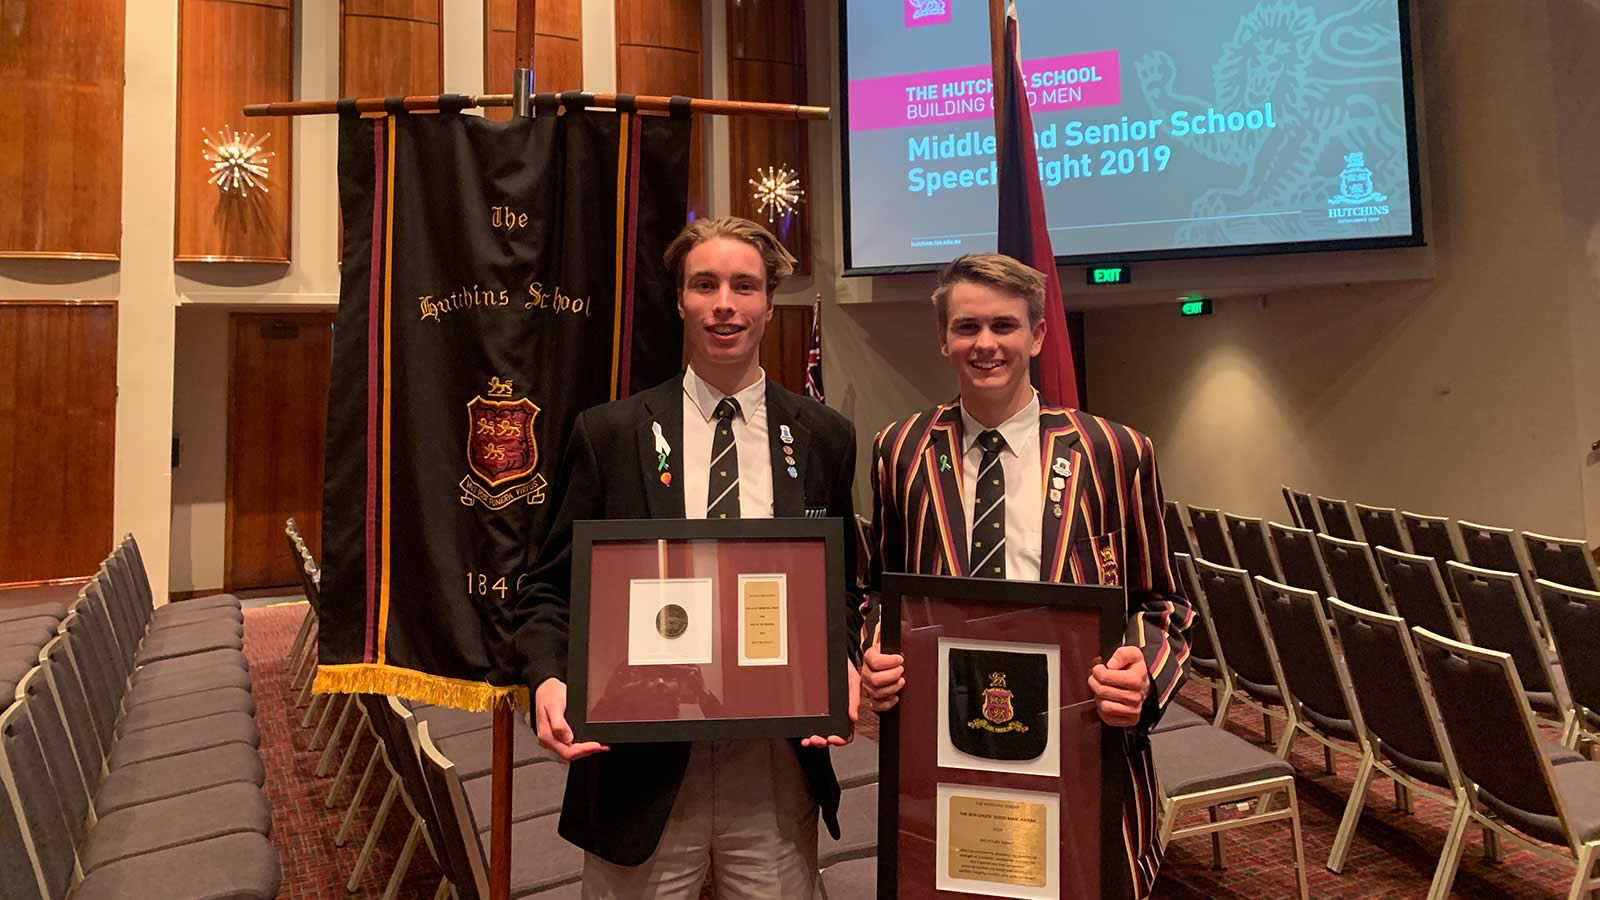 Billy Blackett and Nicholas Smart at Middle and Senior School Speech Night 2019